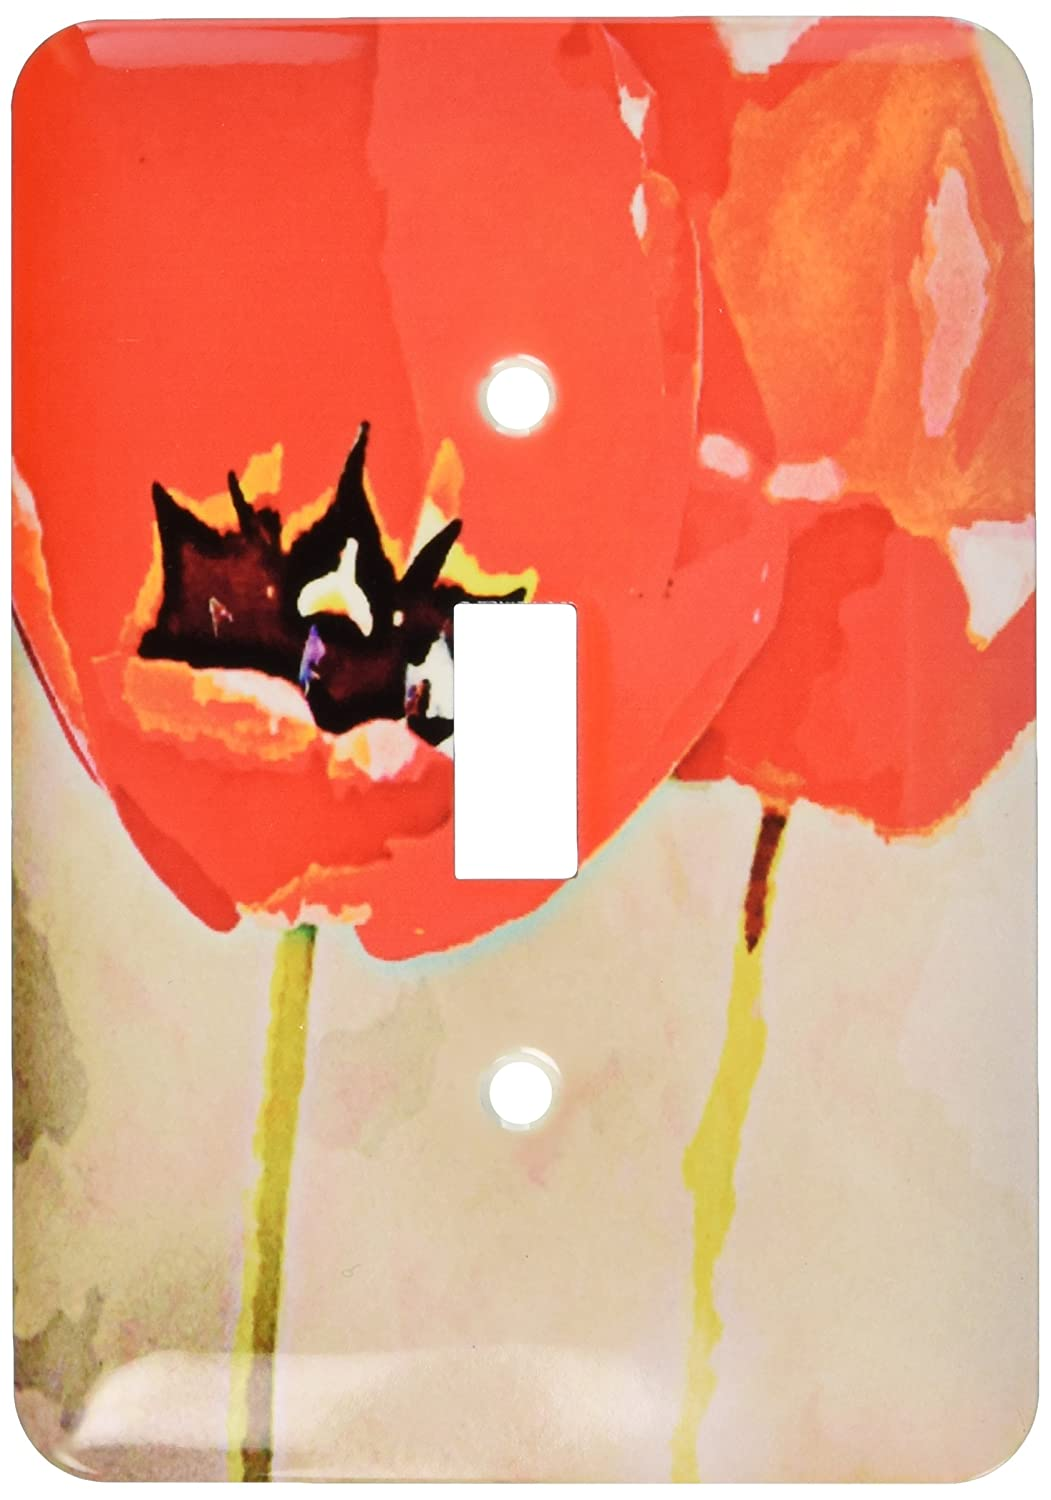 3dRose lsp/_56283/_1 Painted Red Poppies Flowers Floral Print Single Toggle Switch